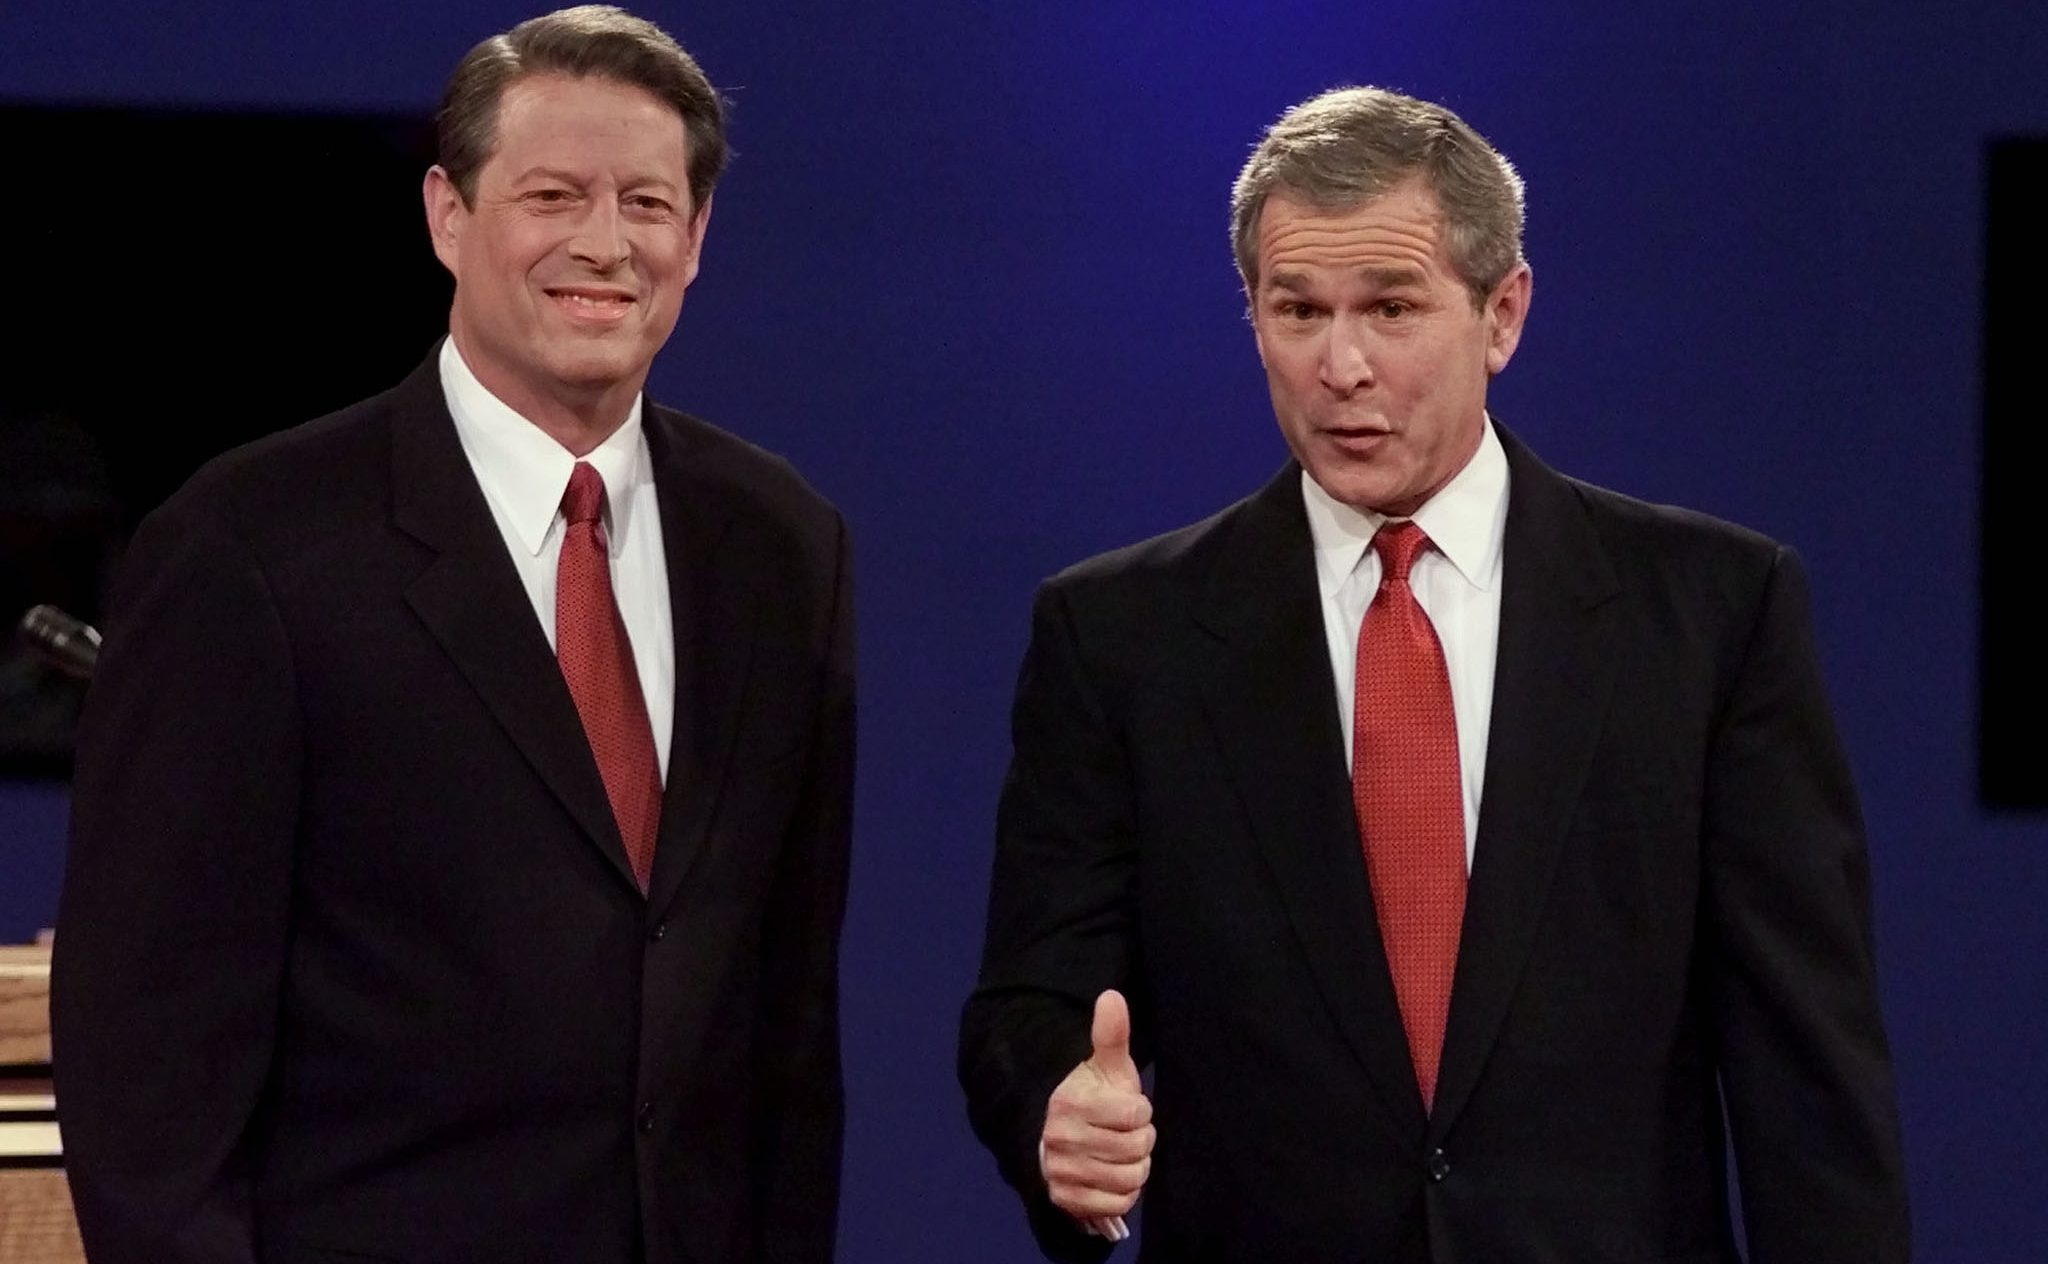 Texas Governor and Republican presidential candidate George W. Bush gives a thumbs-up before the start of the first presidential debate with Democratic presidential candidate Vice President Al Gore (L) prior to the start of the debate at the University of Massachusetts in Boston, October 3, 2000. Today marks the first of three presidential debates leading up to the November 7 U.S. elections.